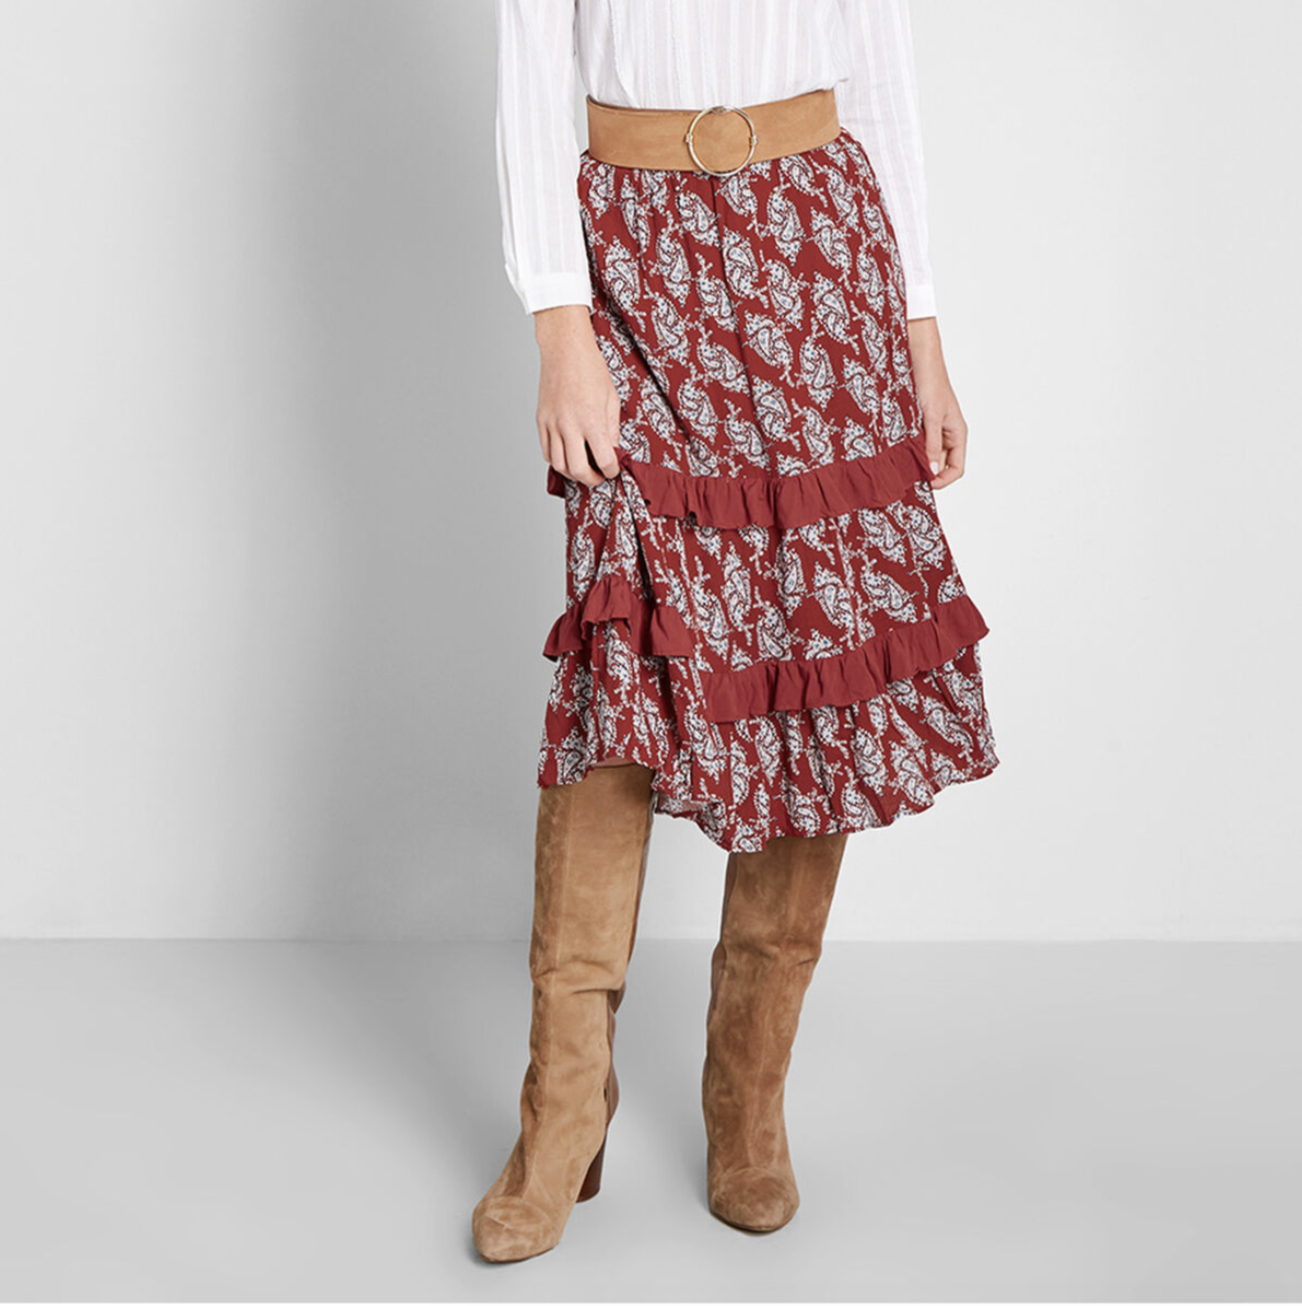 A model in a red tiered ruffled midi skirt with paisley print